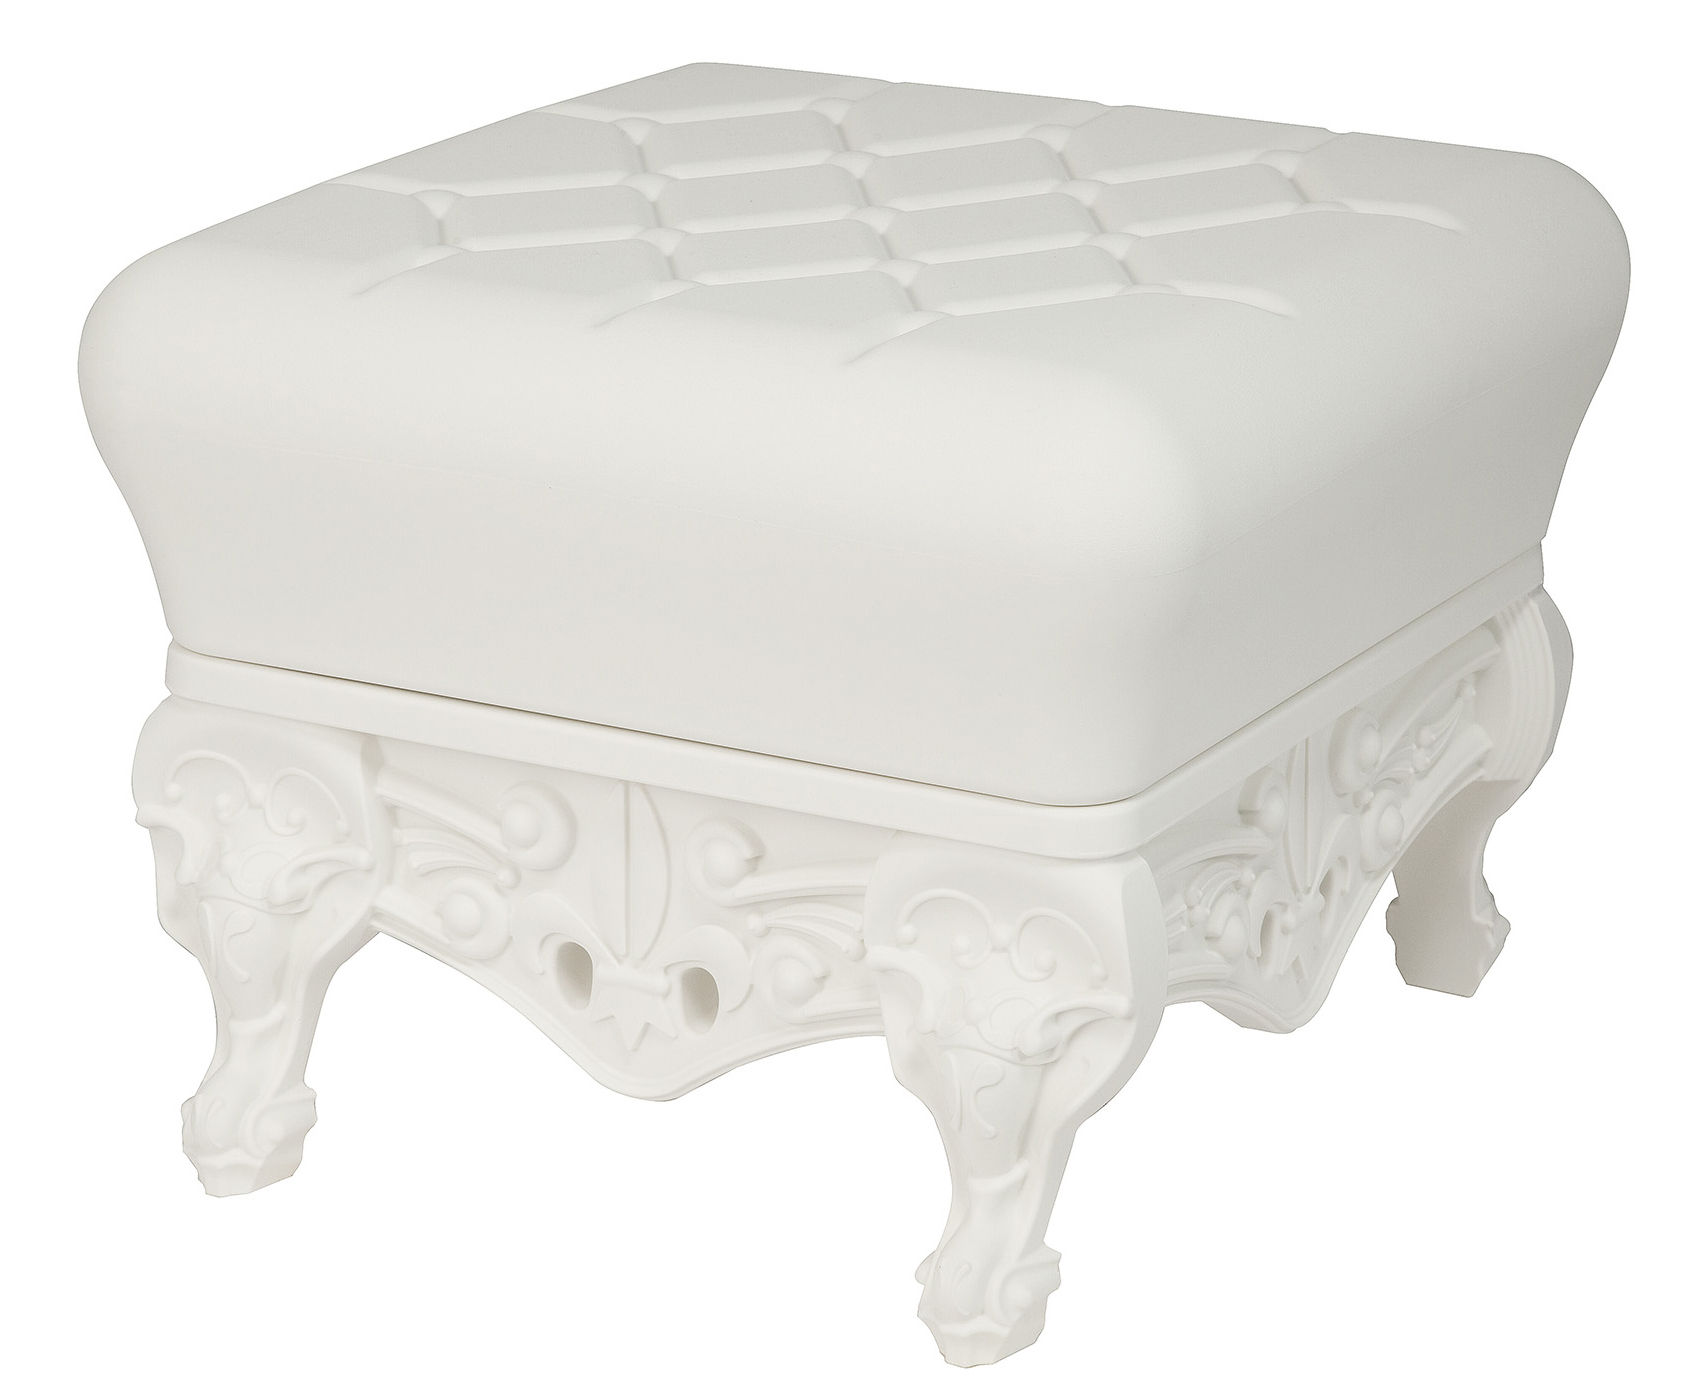 Furniture - Poufs & Floor Cushions - Little Prince of Love Pouf - Footrest by Design of Love by Slide - White - roto-moulded polyhene